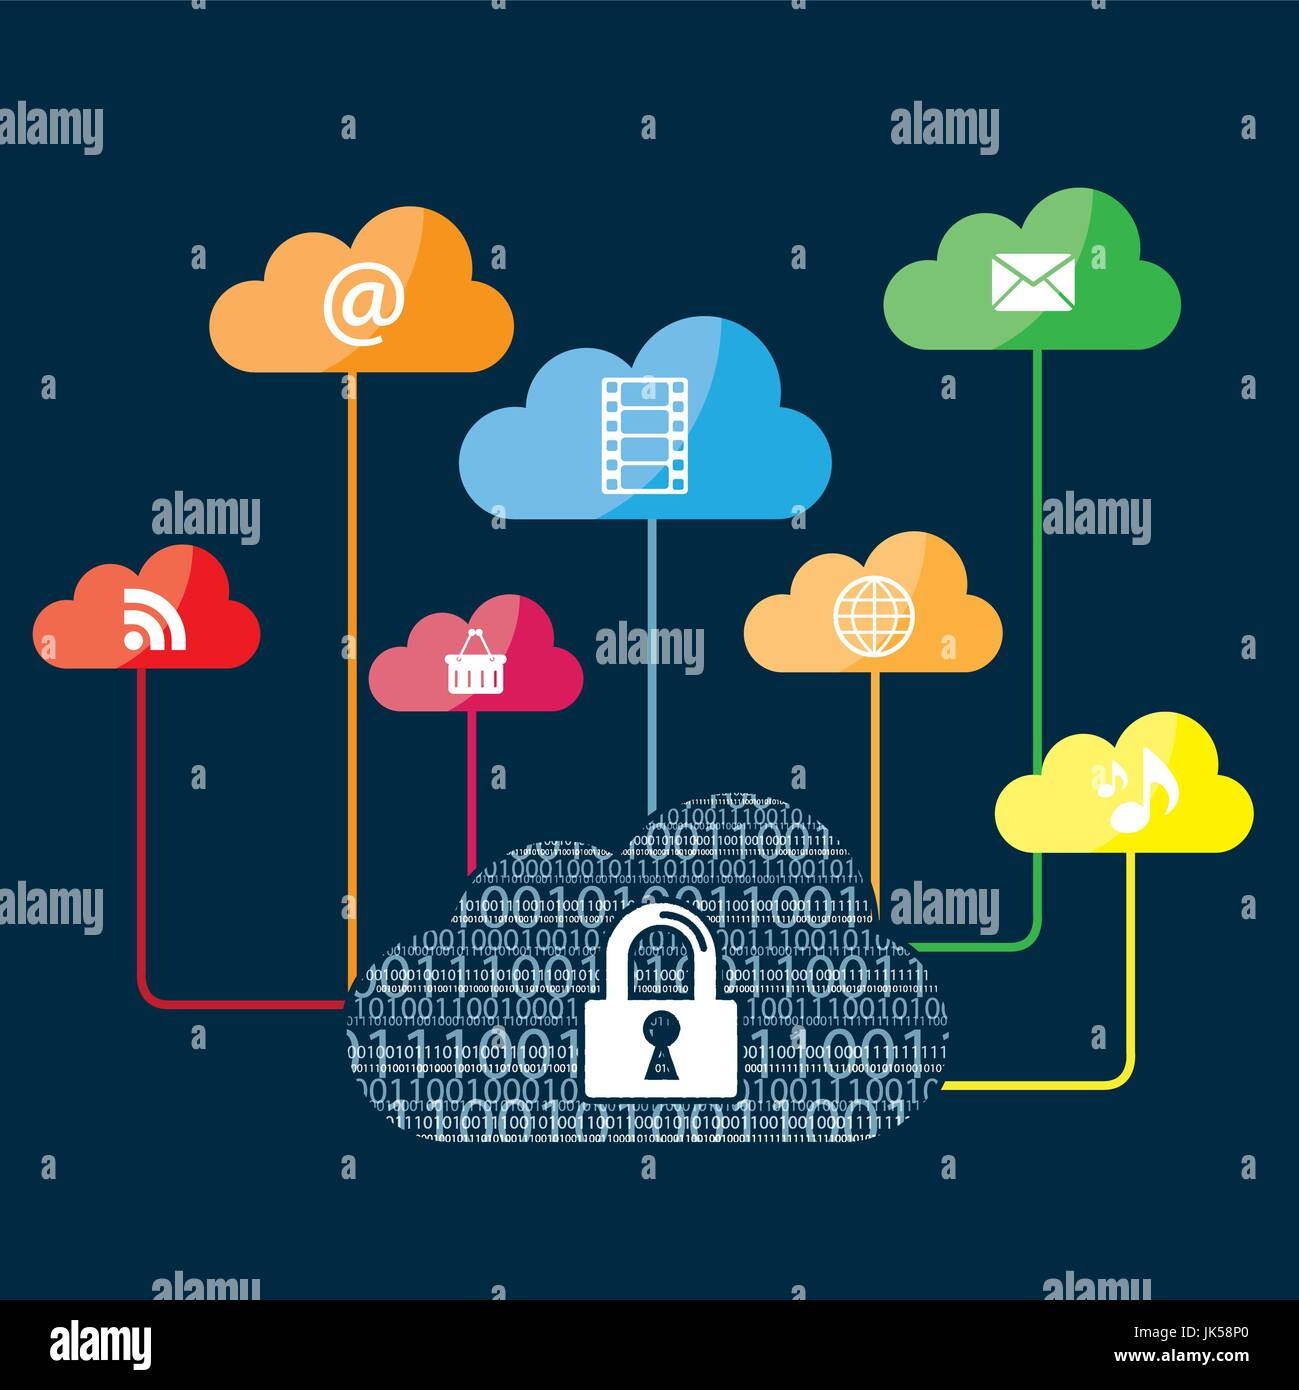 Internet security in cloud computing and binary code. Medias sharing in the cloud. - Stock Image